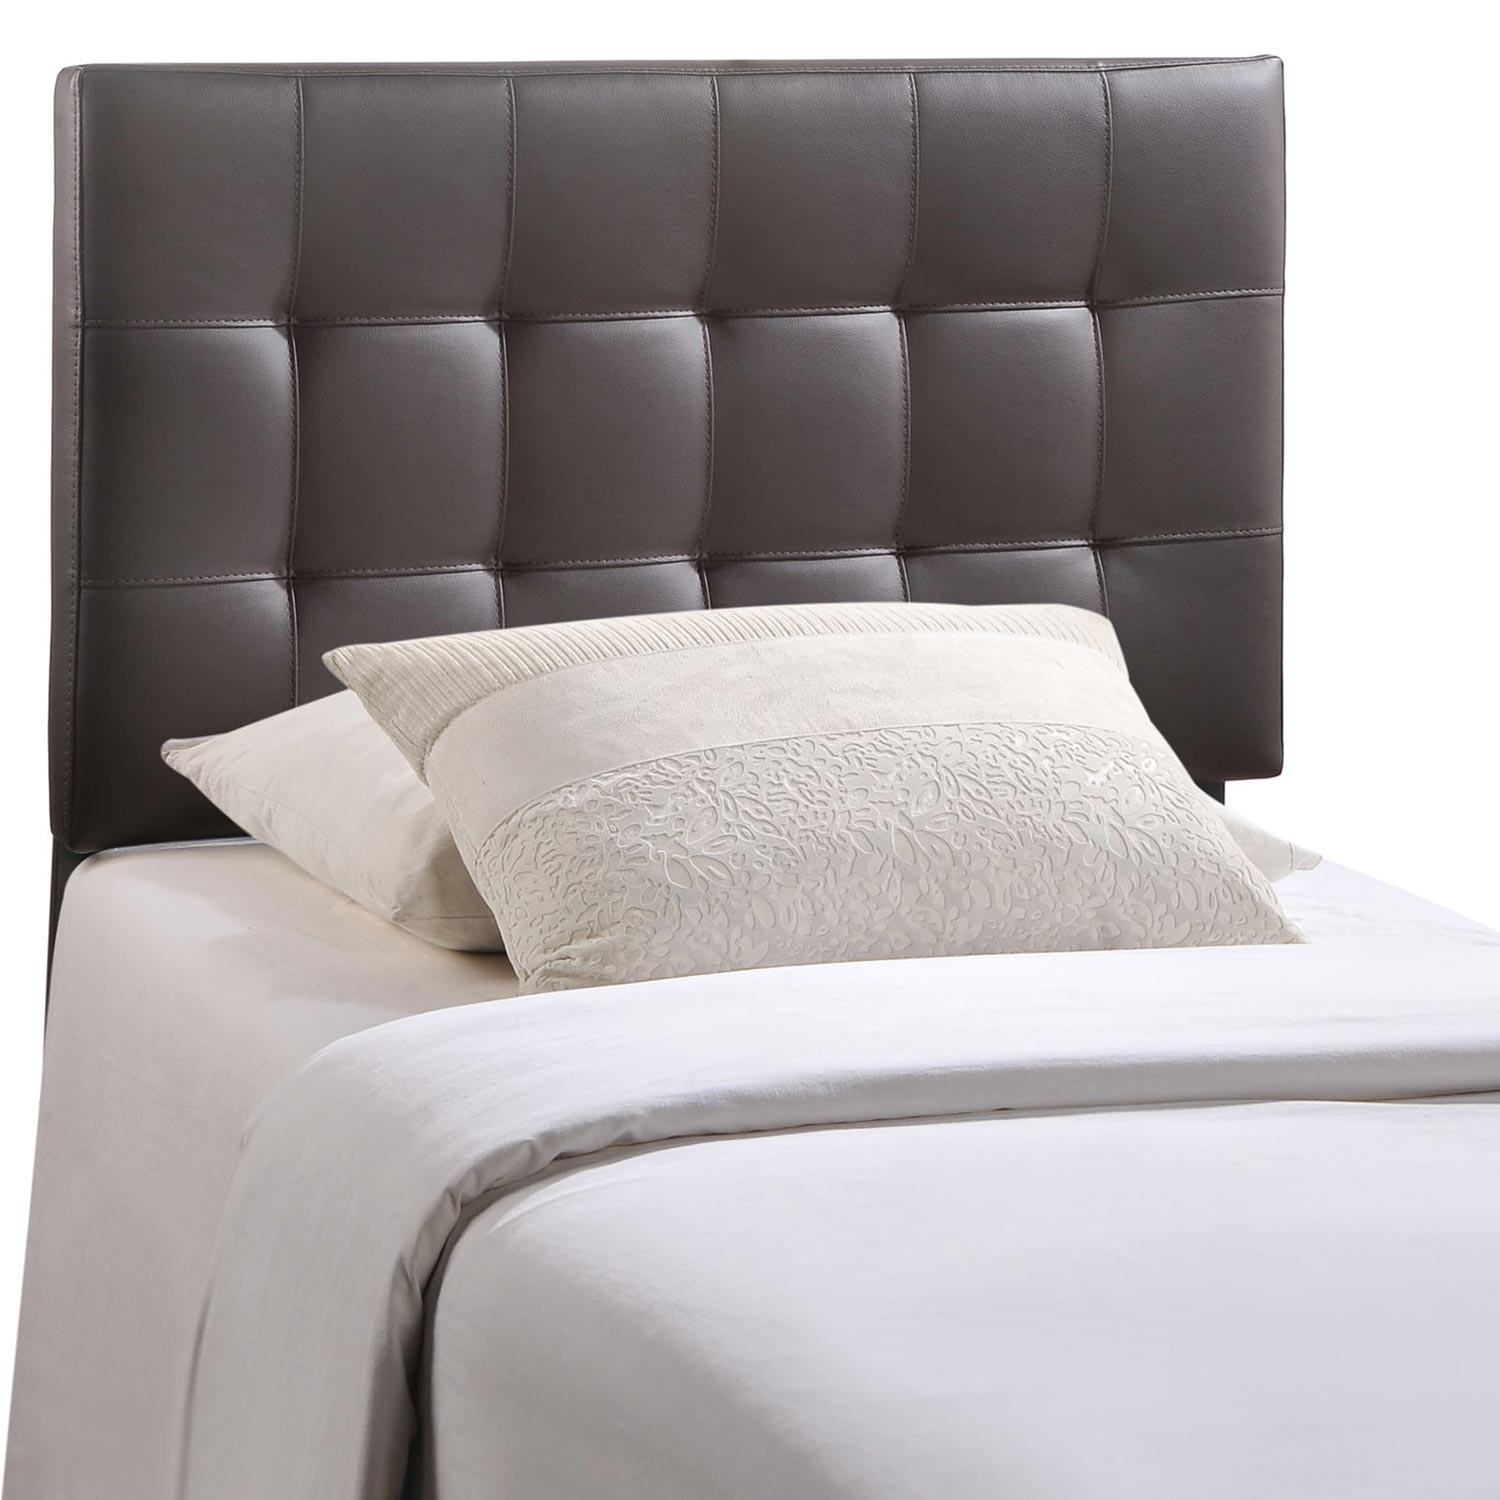 Modway Lily Vinyl Headboard - Brown